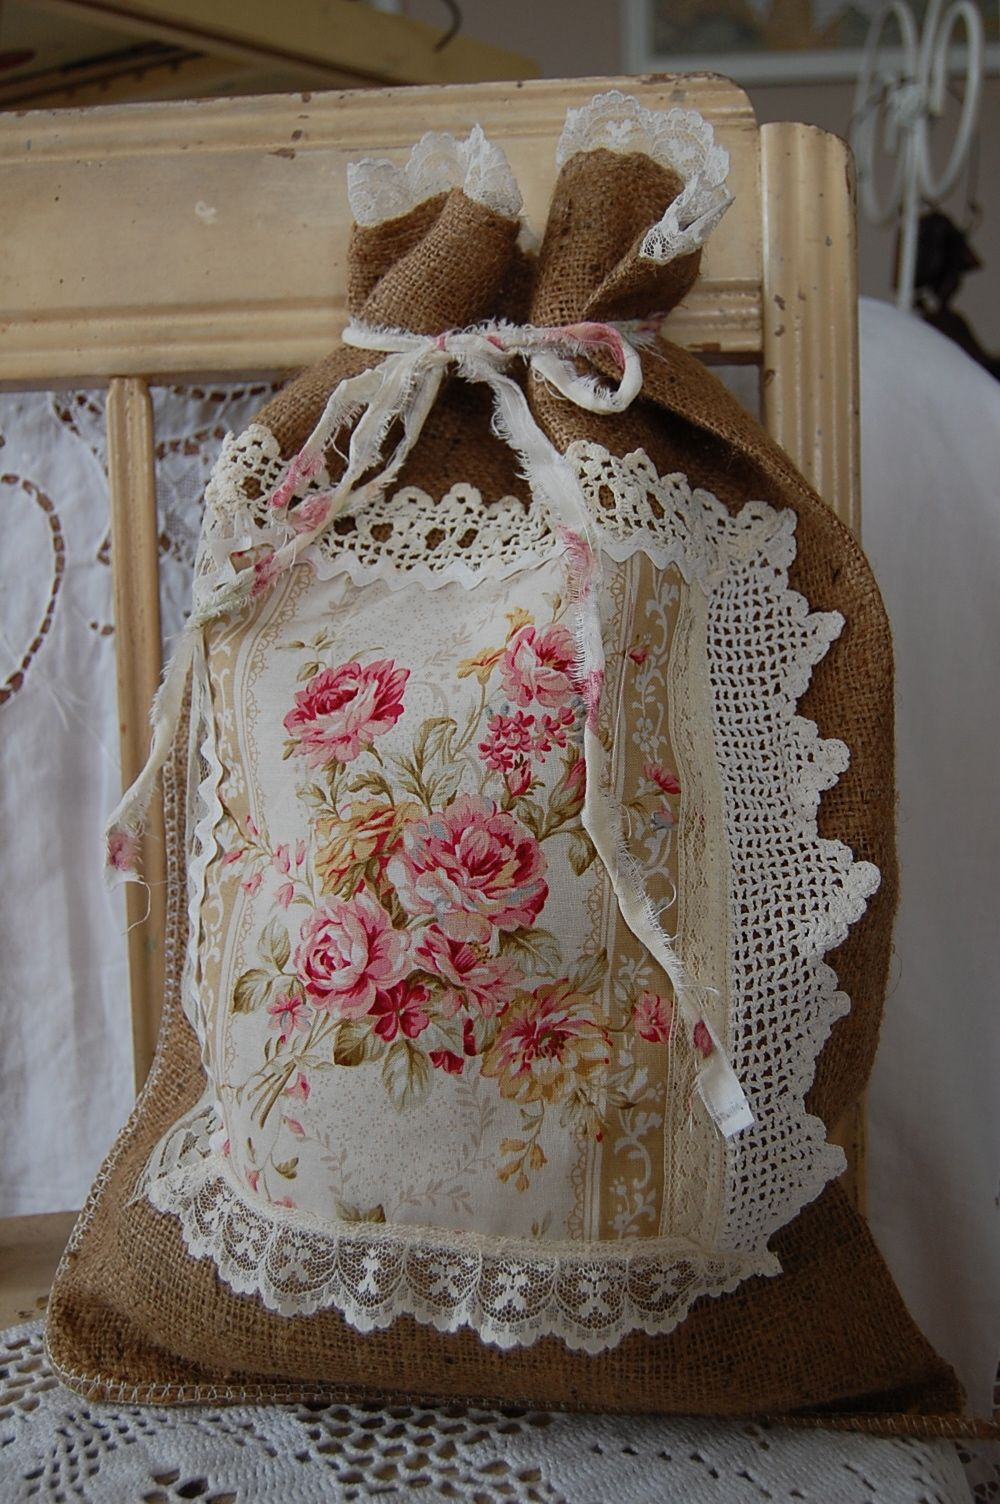 Wonderful Vintage Hankie Bag Made Of Burlap, But I Will Use Osnaburg Instead, Itu0027s  Much Gallery